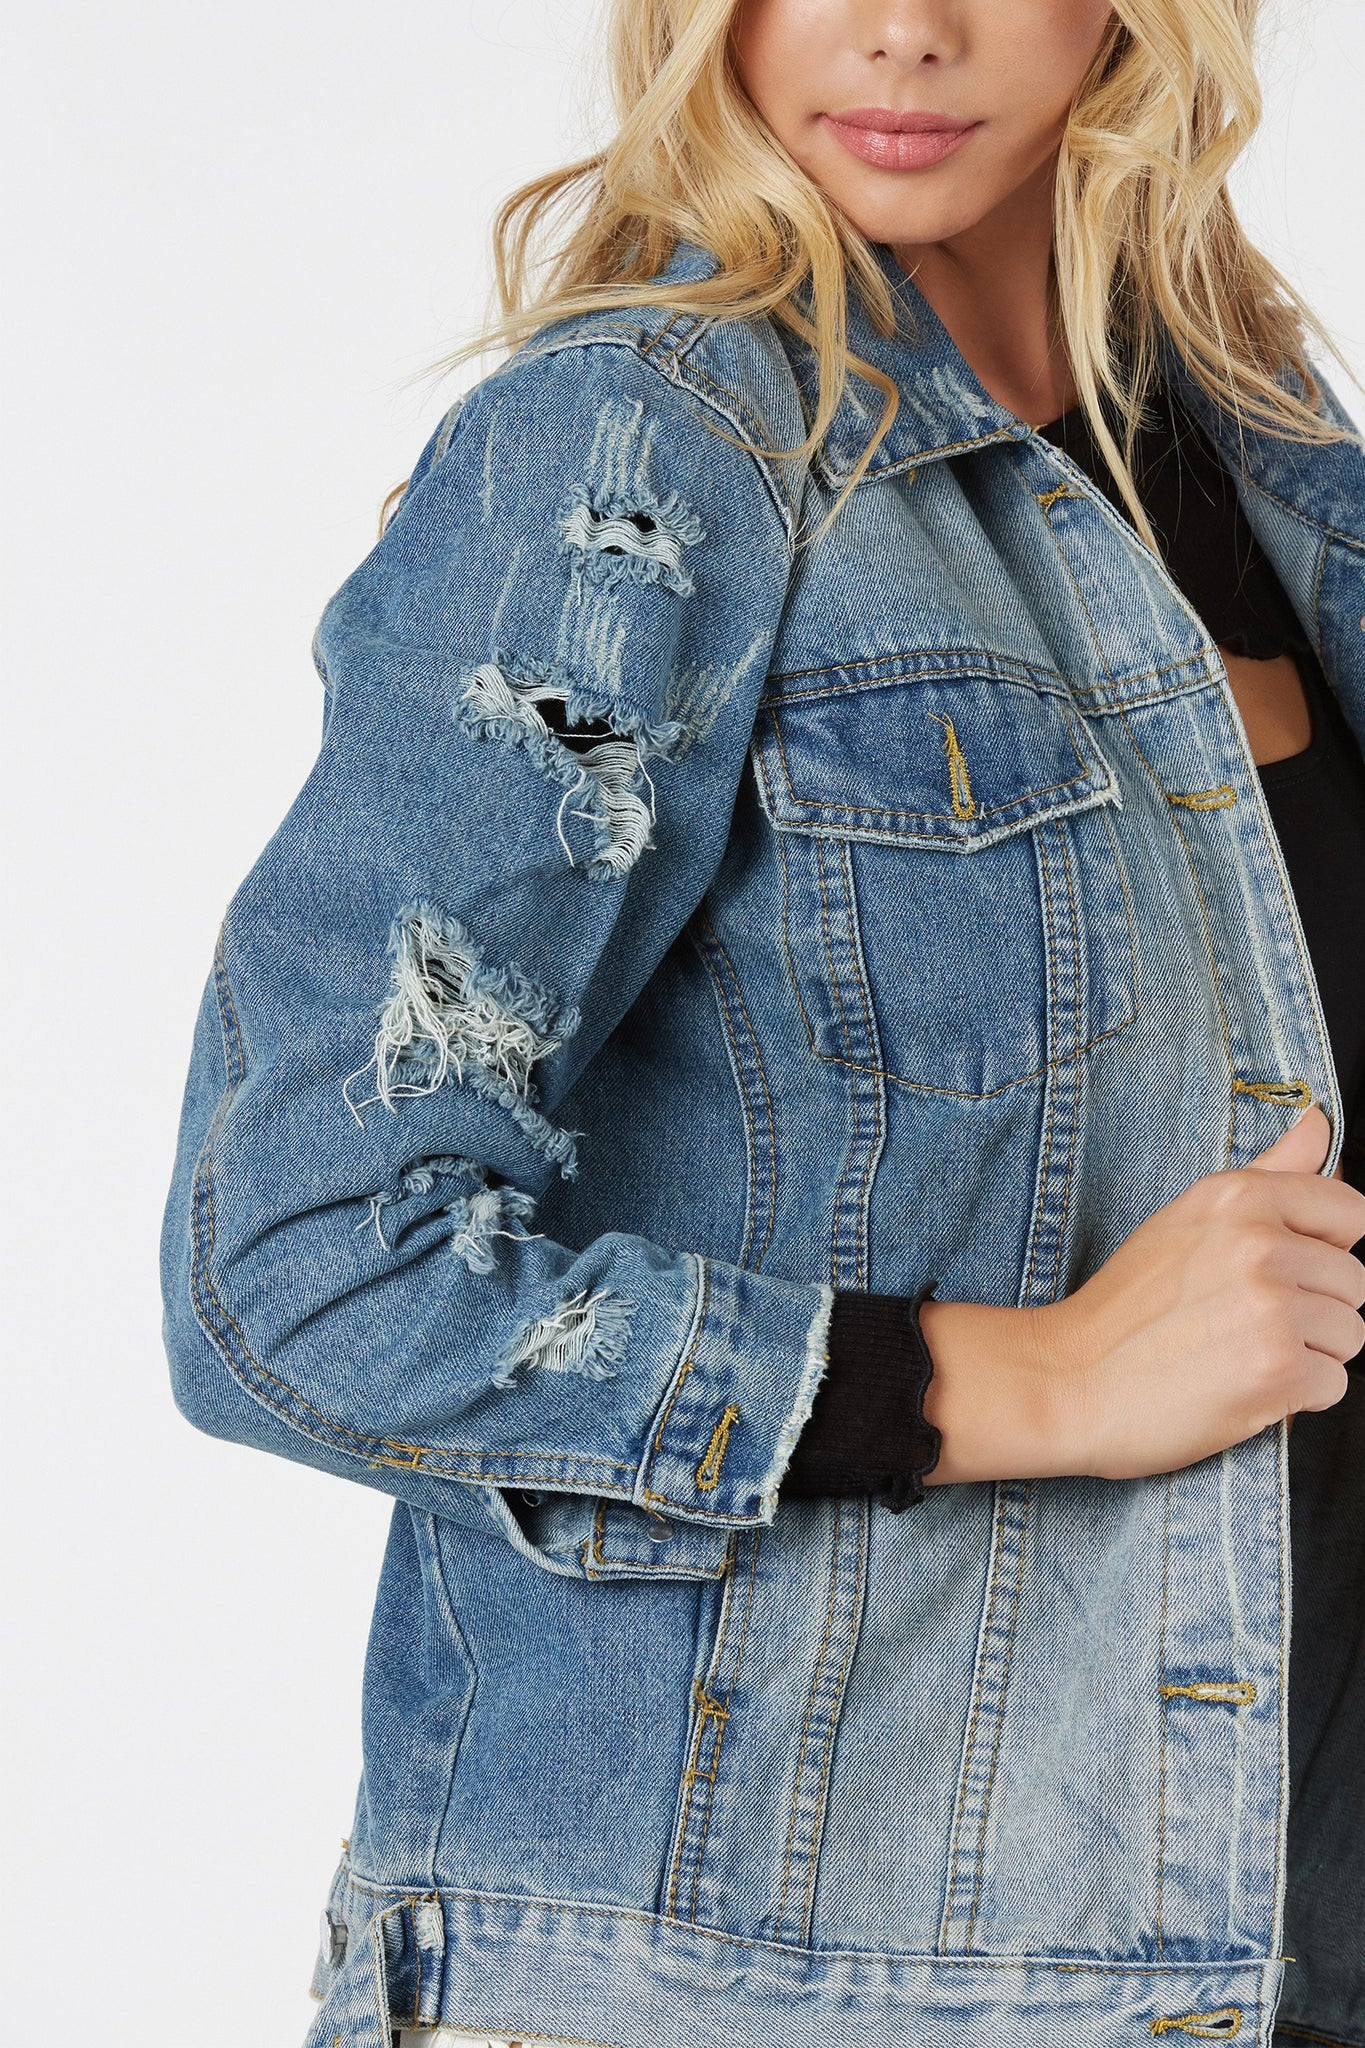 Trendy oversized denim jacket with heavy distressing. Classic button front closure with vintage style wash.